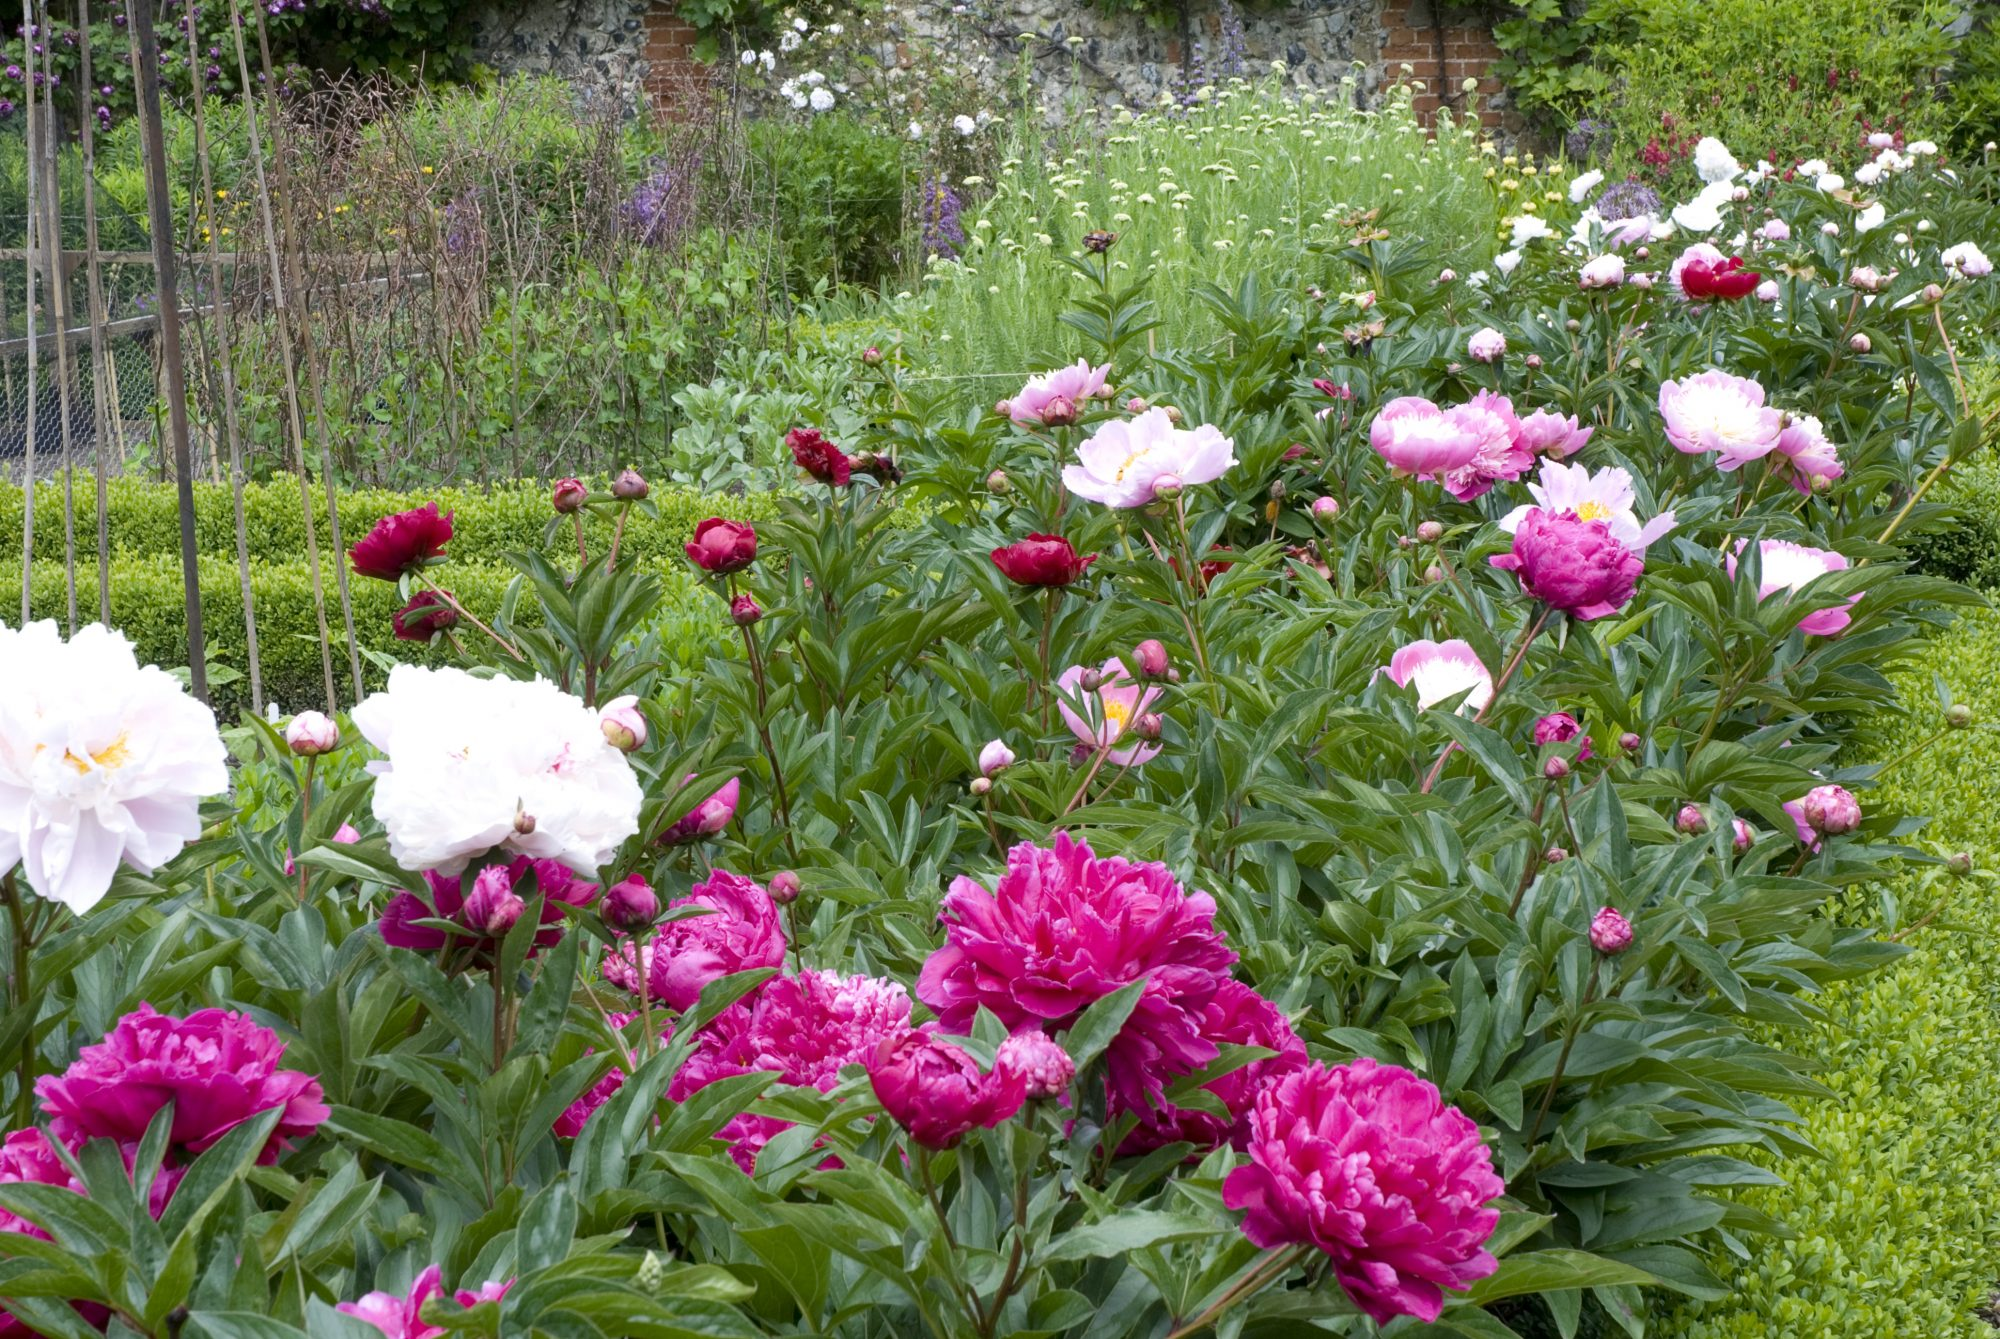 Peonies can outlive people